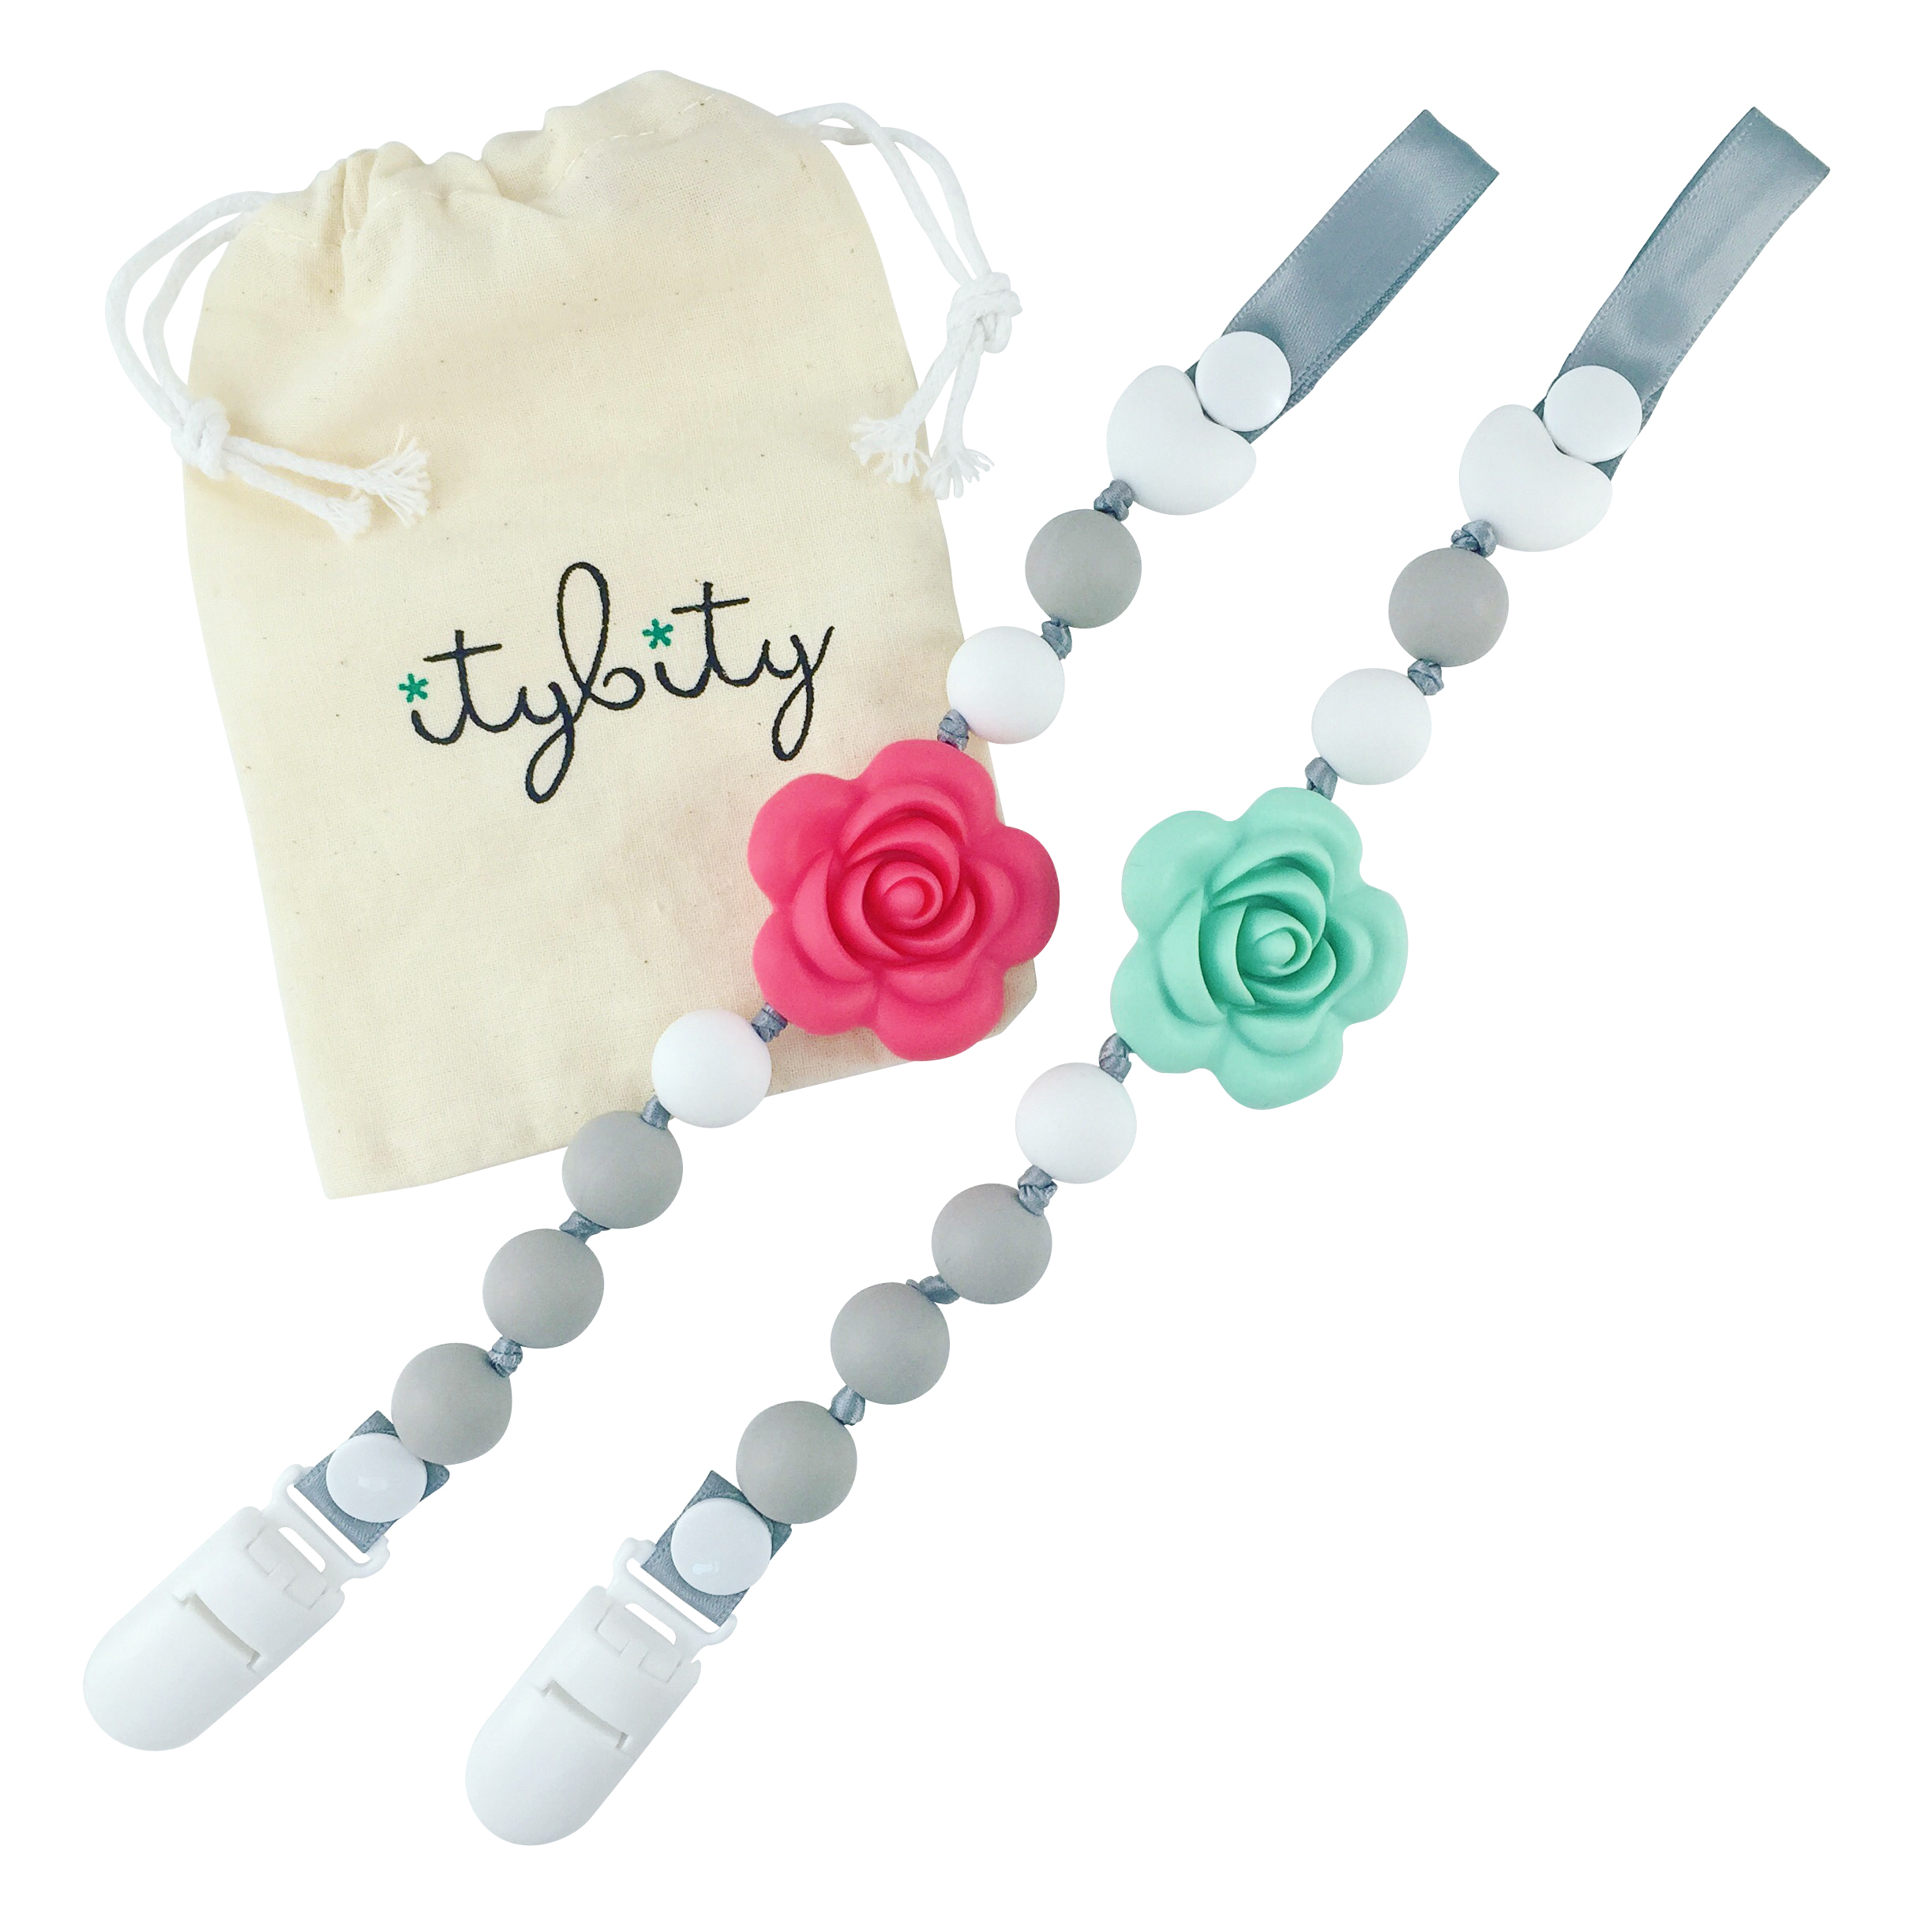 Pacifier Clip Girl, BPA Free Silicone Teether, Set of 2 (Soft Gray/Coral/Mint/White)